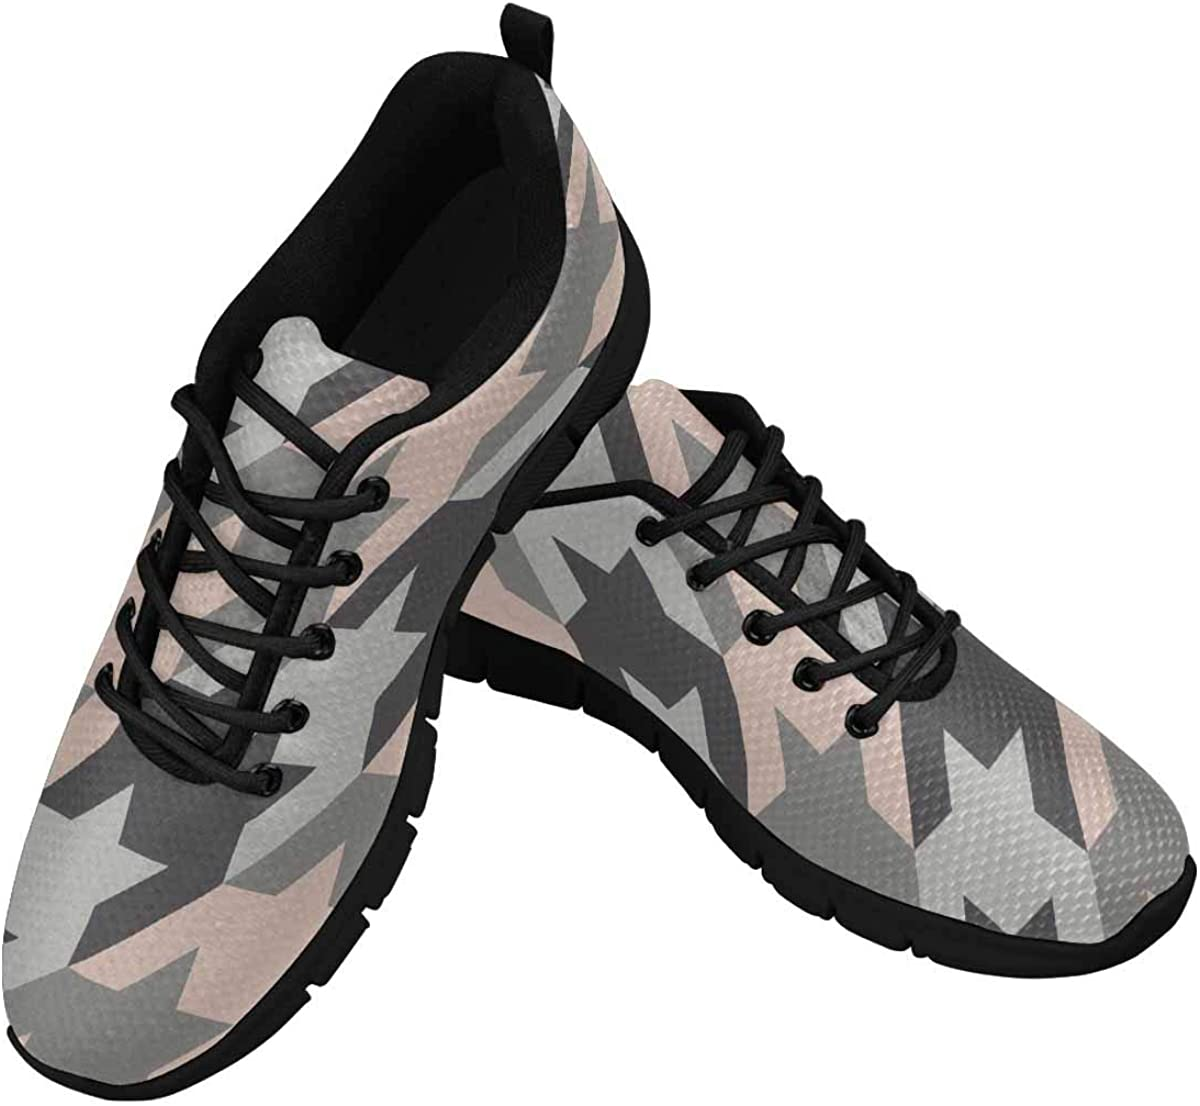 InterestPrint Surface Pattern with Houndstooth Ornament Women's Sneaker Lace Up Running Comfort Sports Shoes